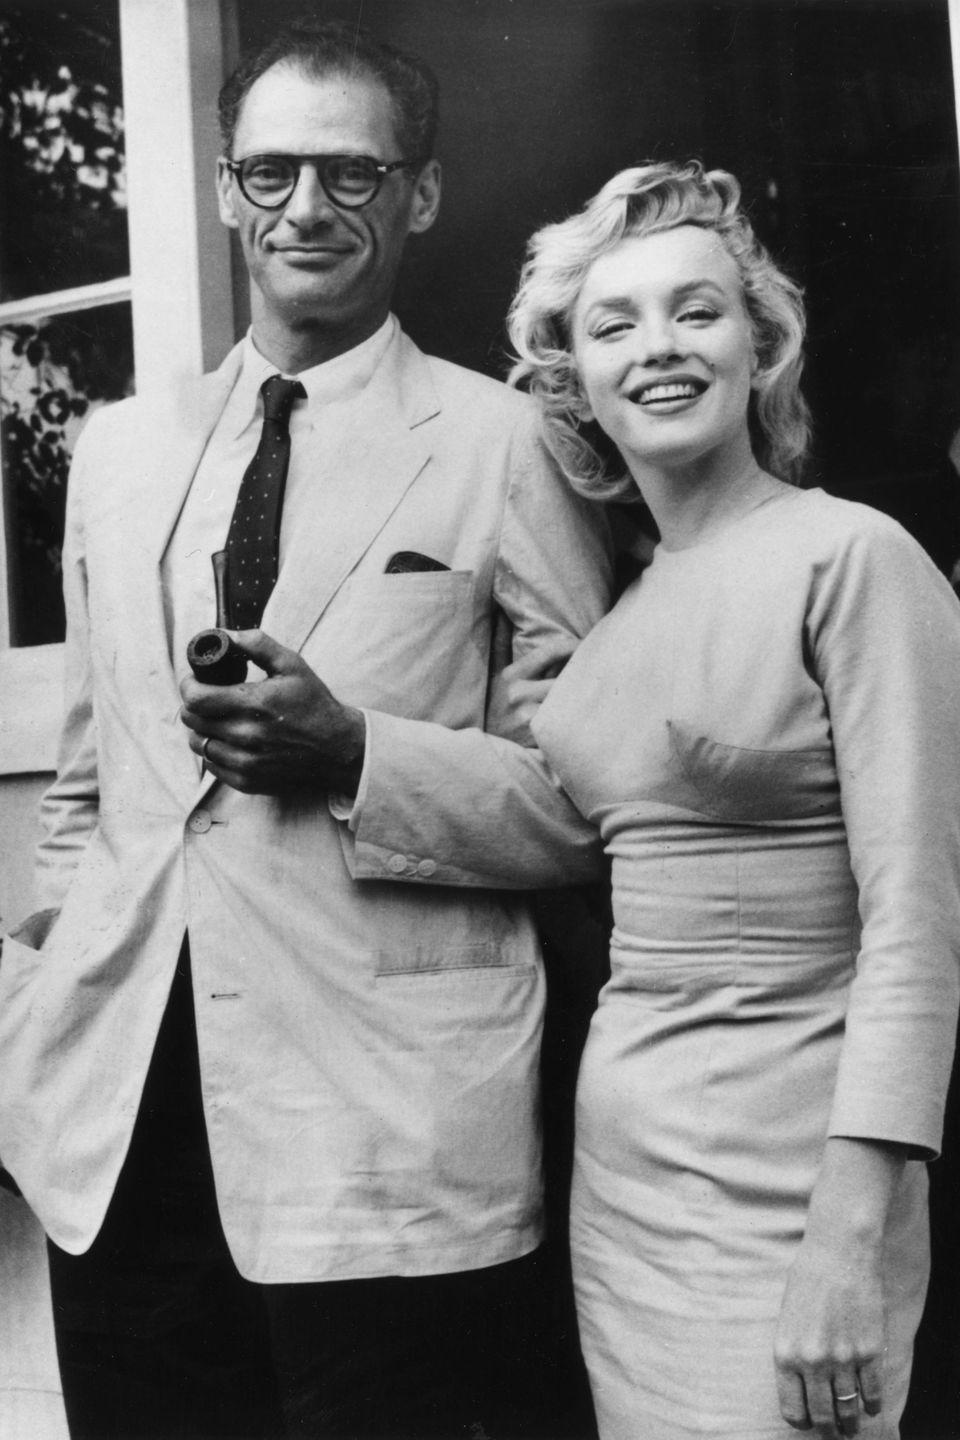 <p>Monroe posing with her second husband, playwright Arthur Miller, in their first year of marriage. At 41 years old he was 11 years her senior. </p>